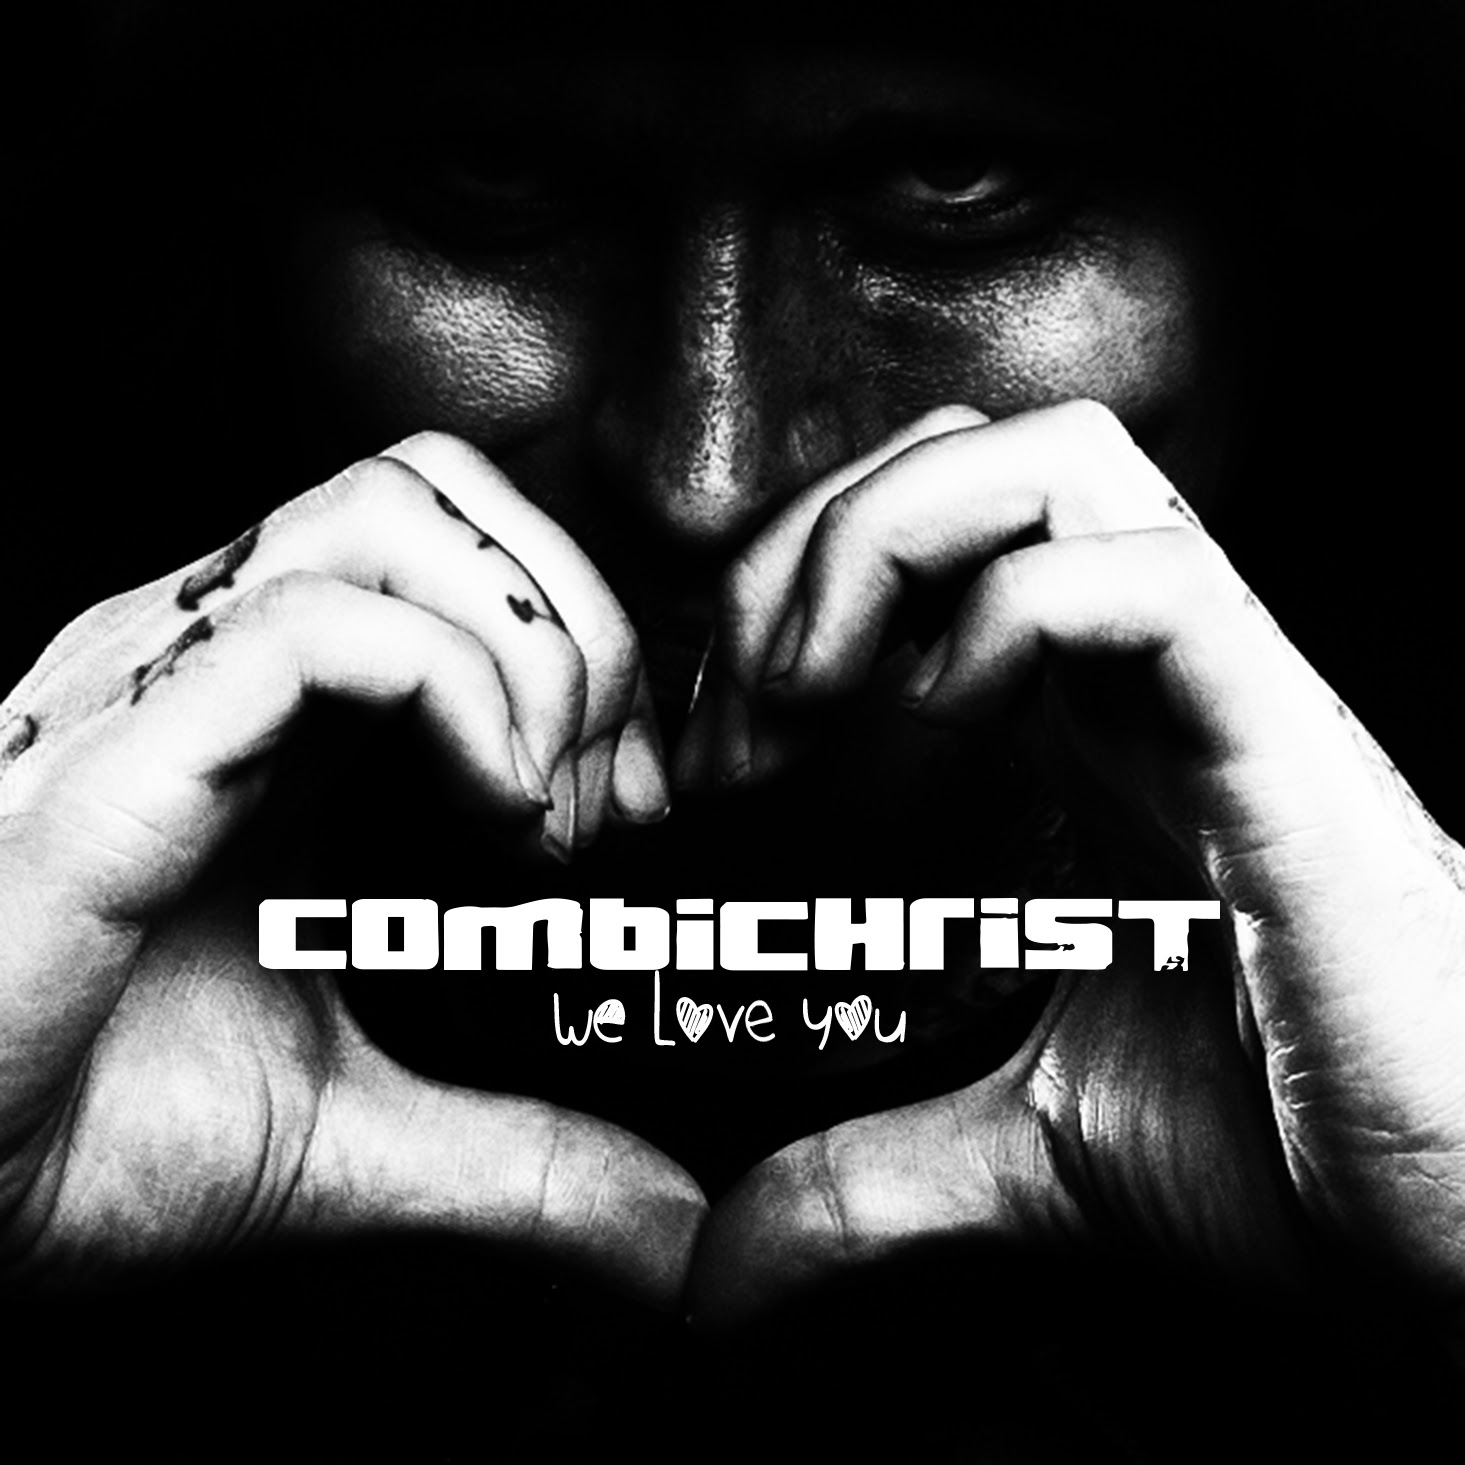 Combichrist we love you